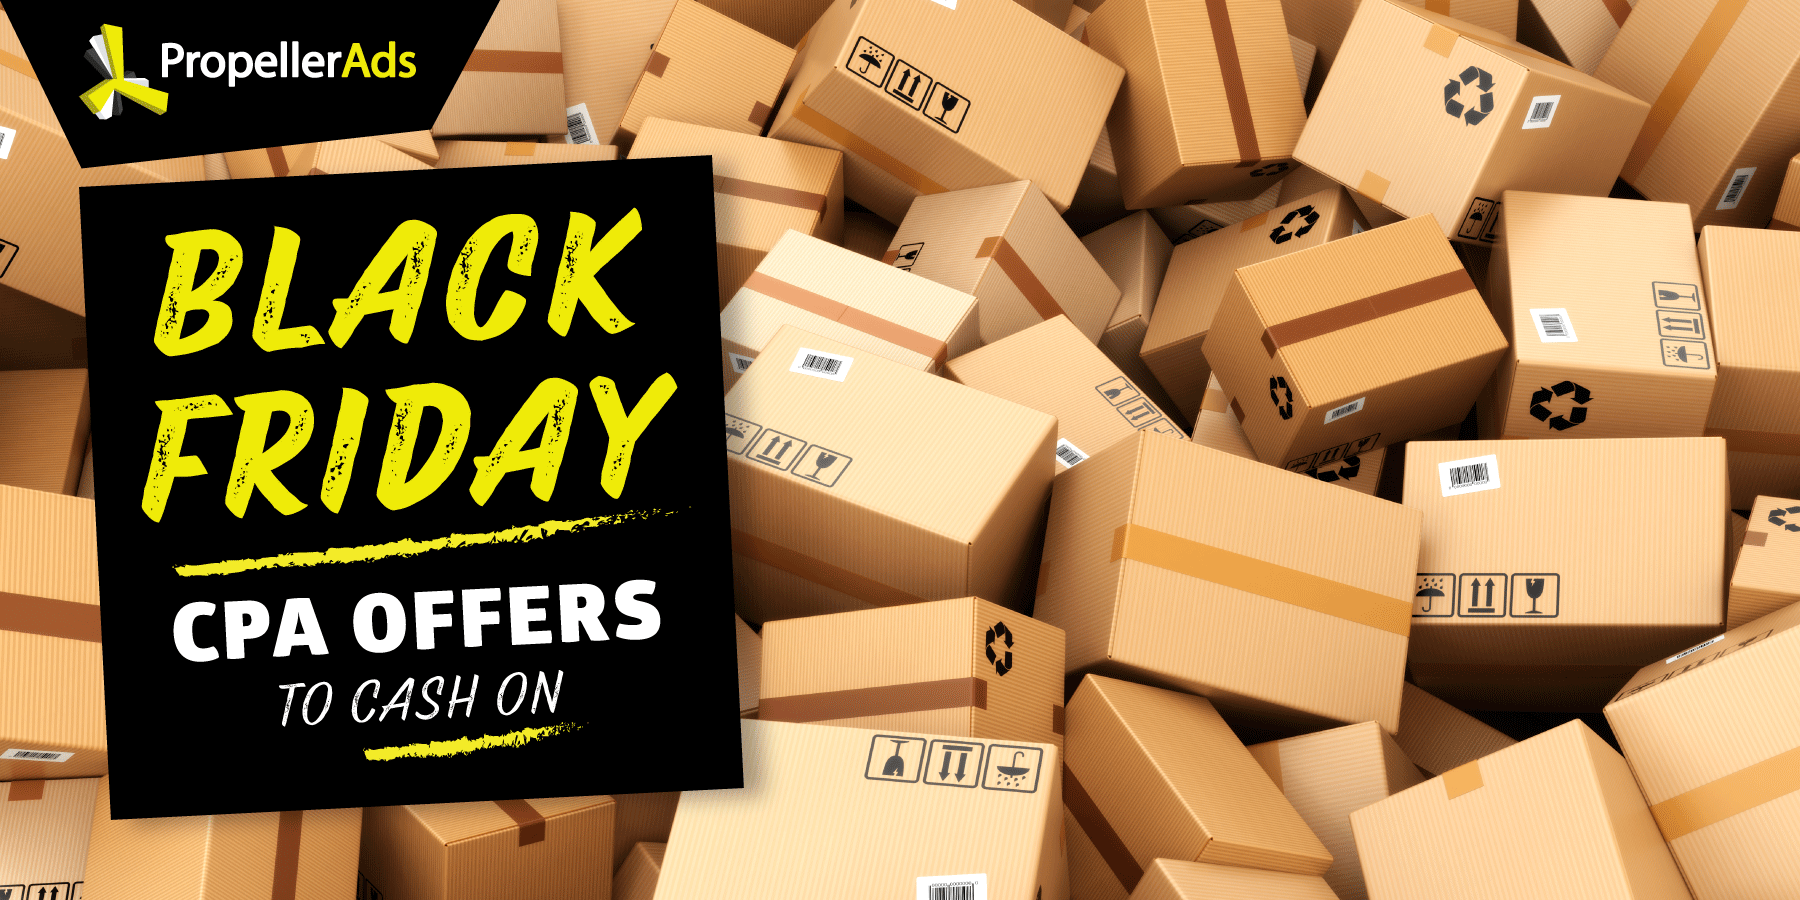 Black Friday The Blackest Offers From Top Cpa Networks Propellerads Blog